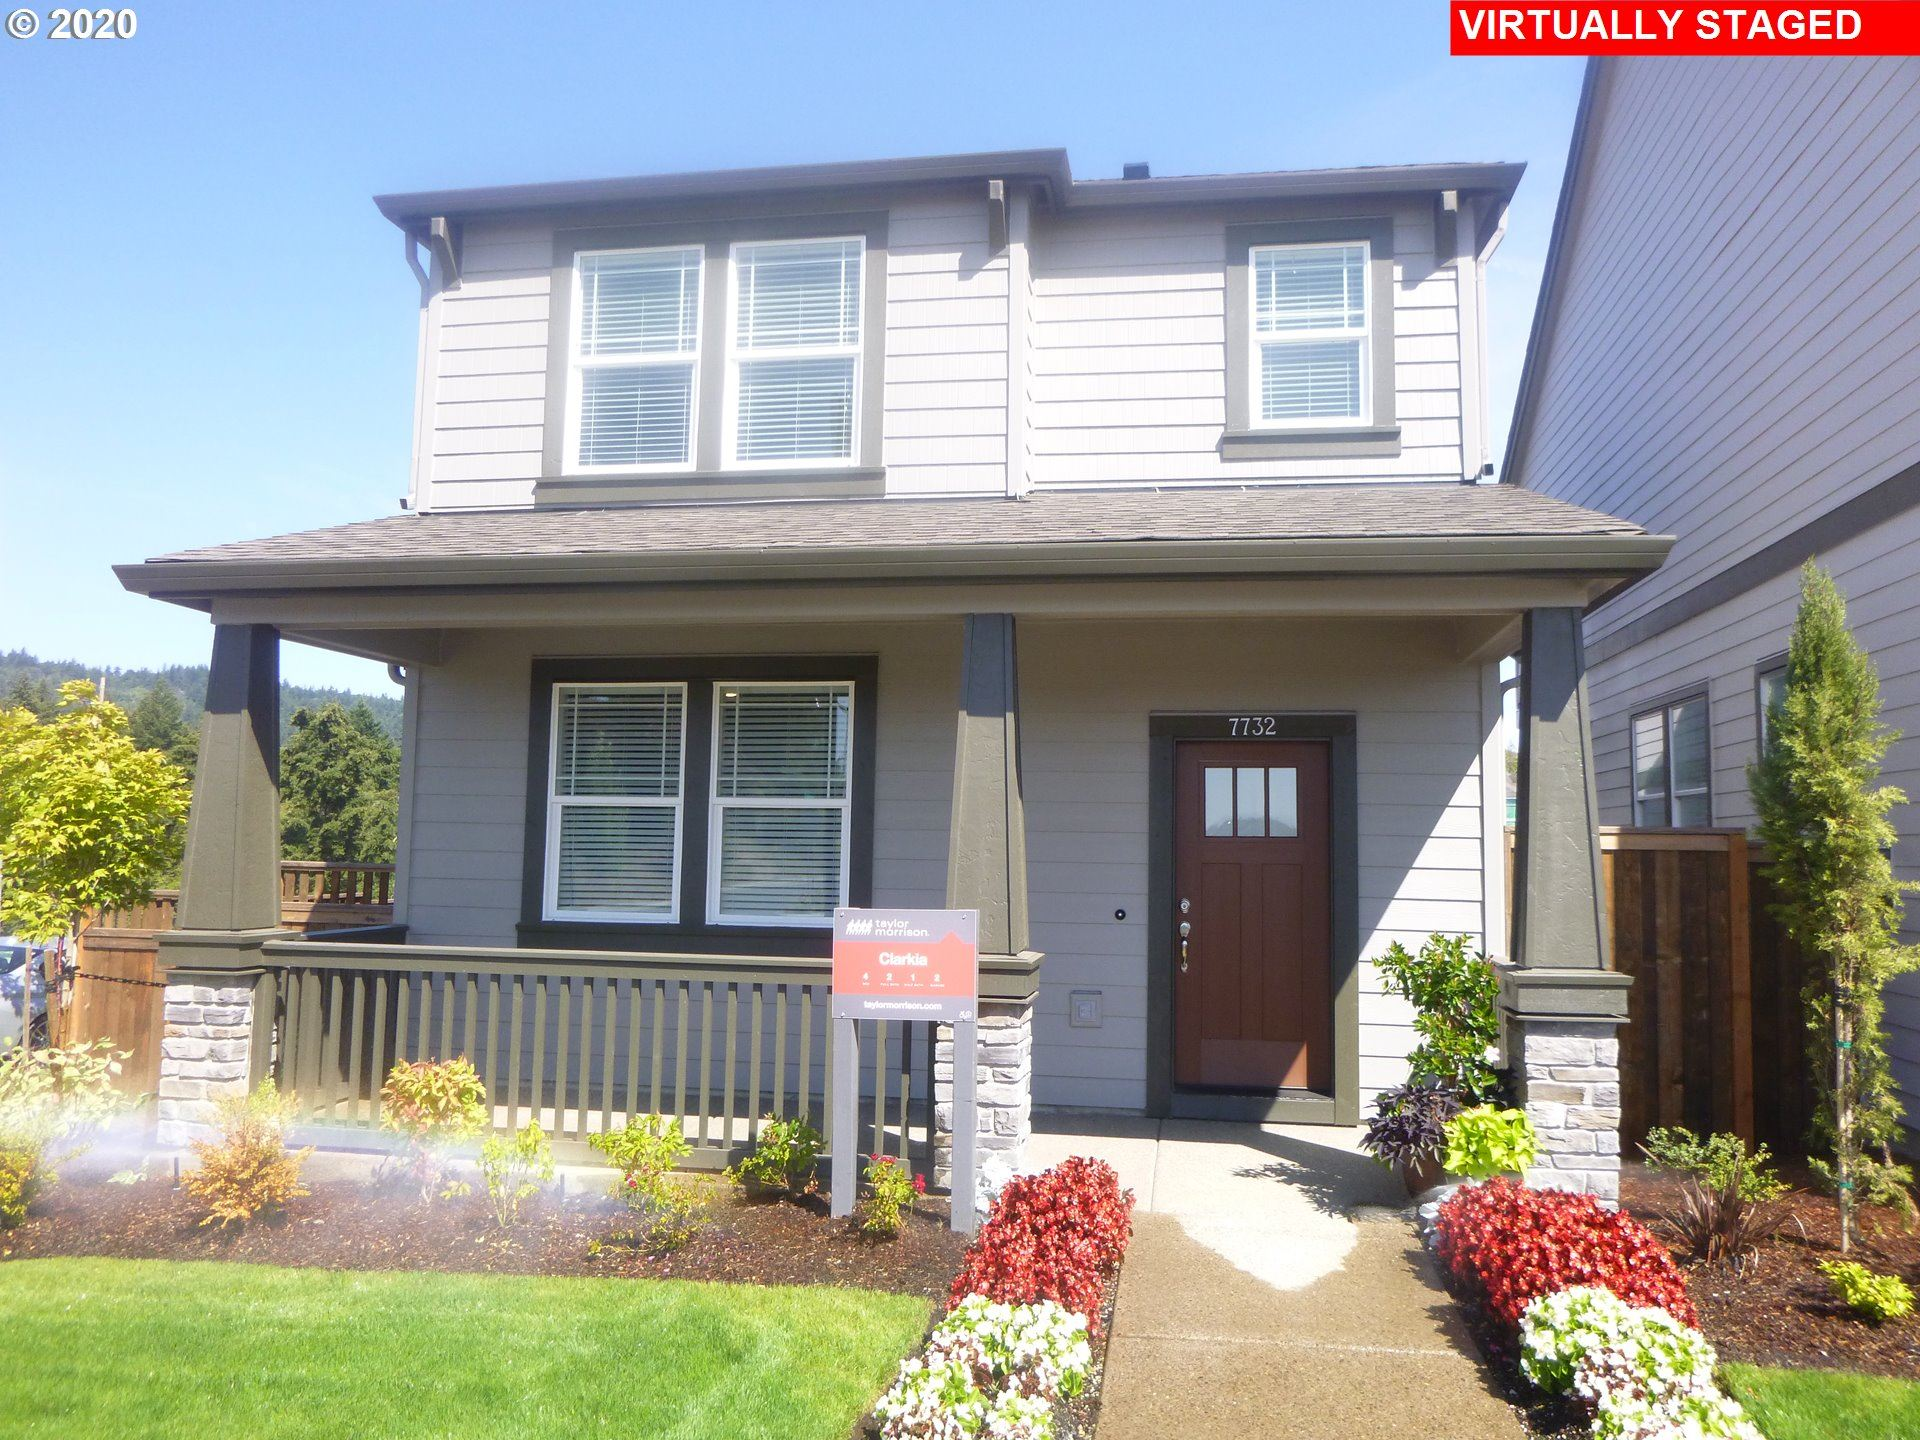 15223 NW COSMOS ST, Portland, OR 97229 - MLS#: 20189076